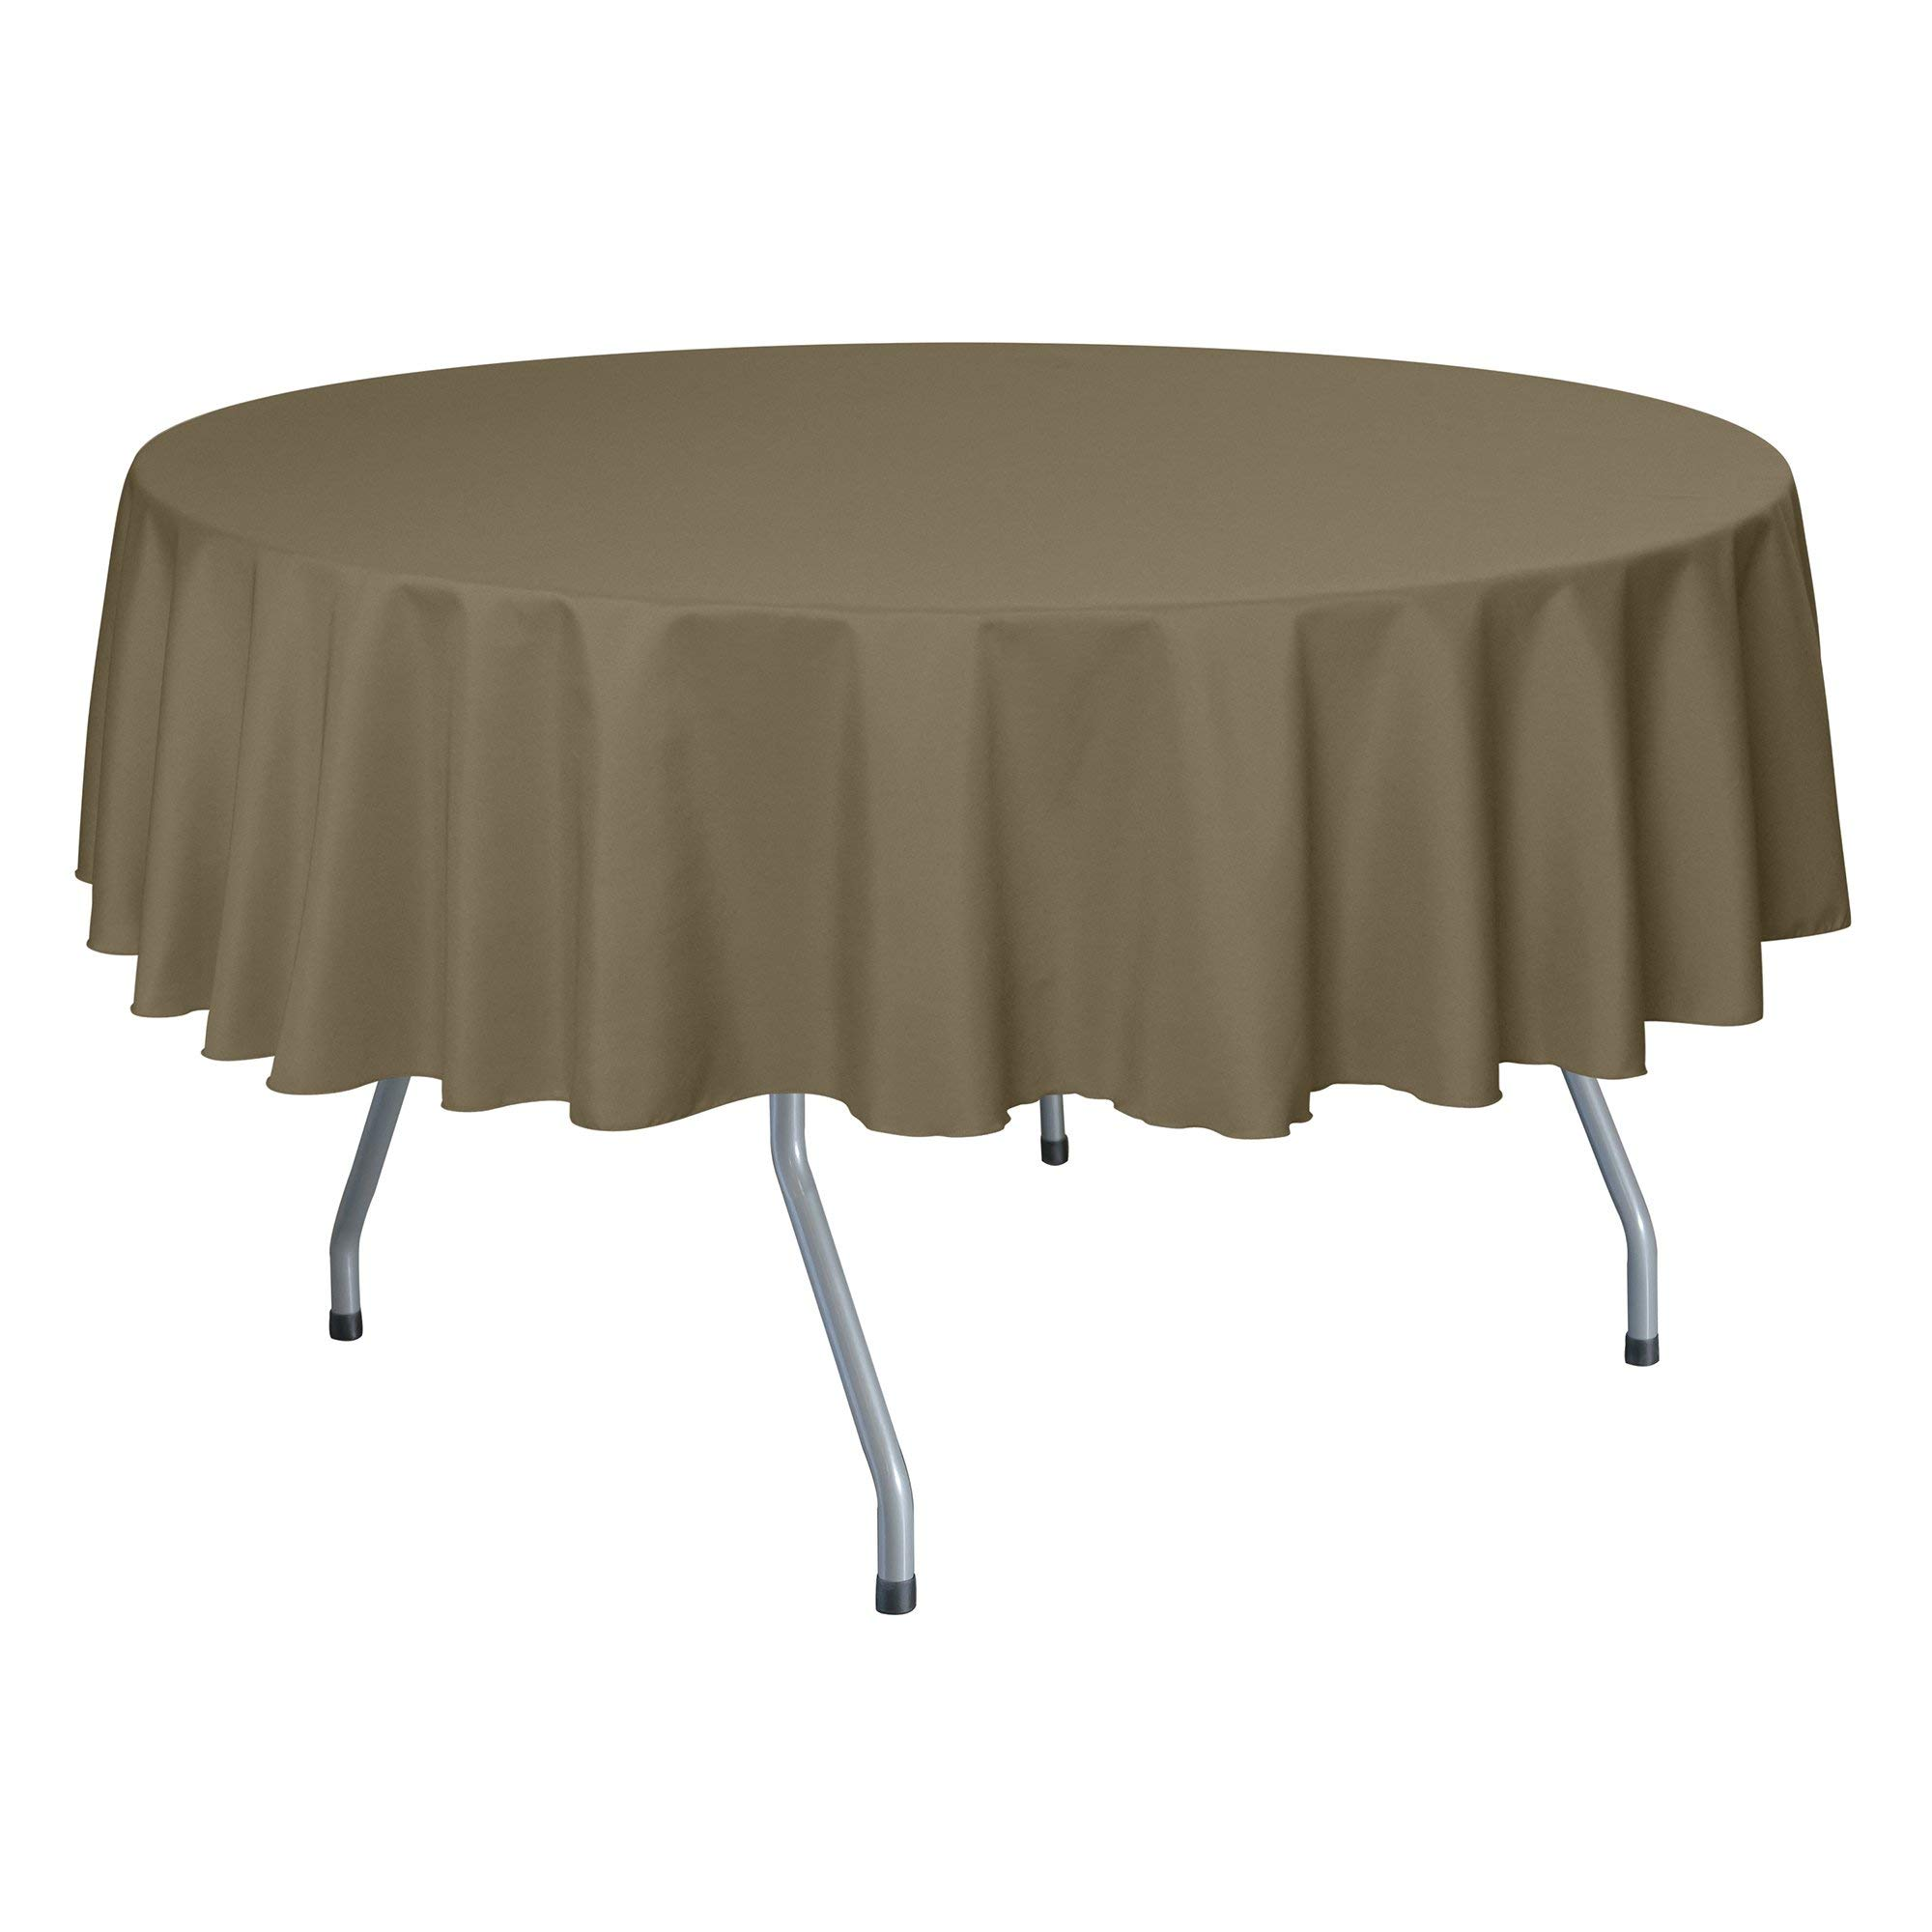 Ultimate Textile -10 Pack- 72-Inch Round Polyester Linen Tablecloth, Cafe Khaki by Ultimate Textile